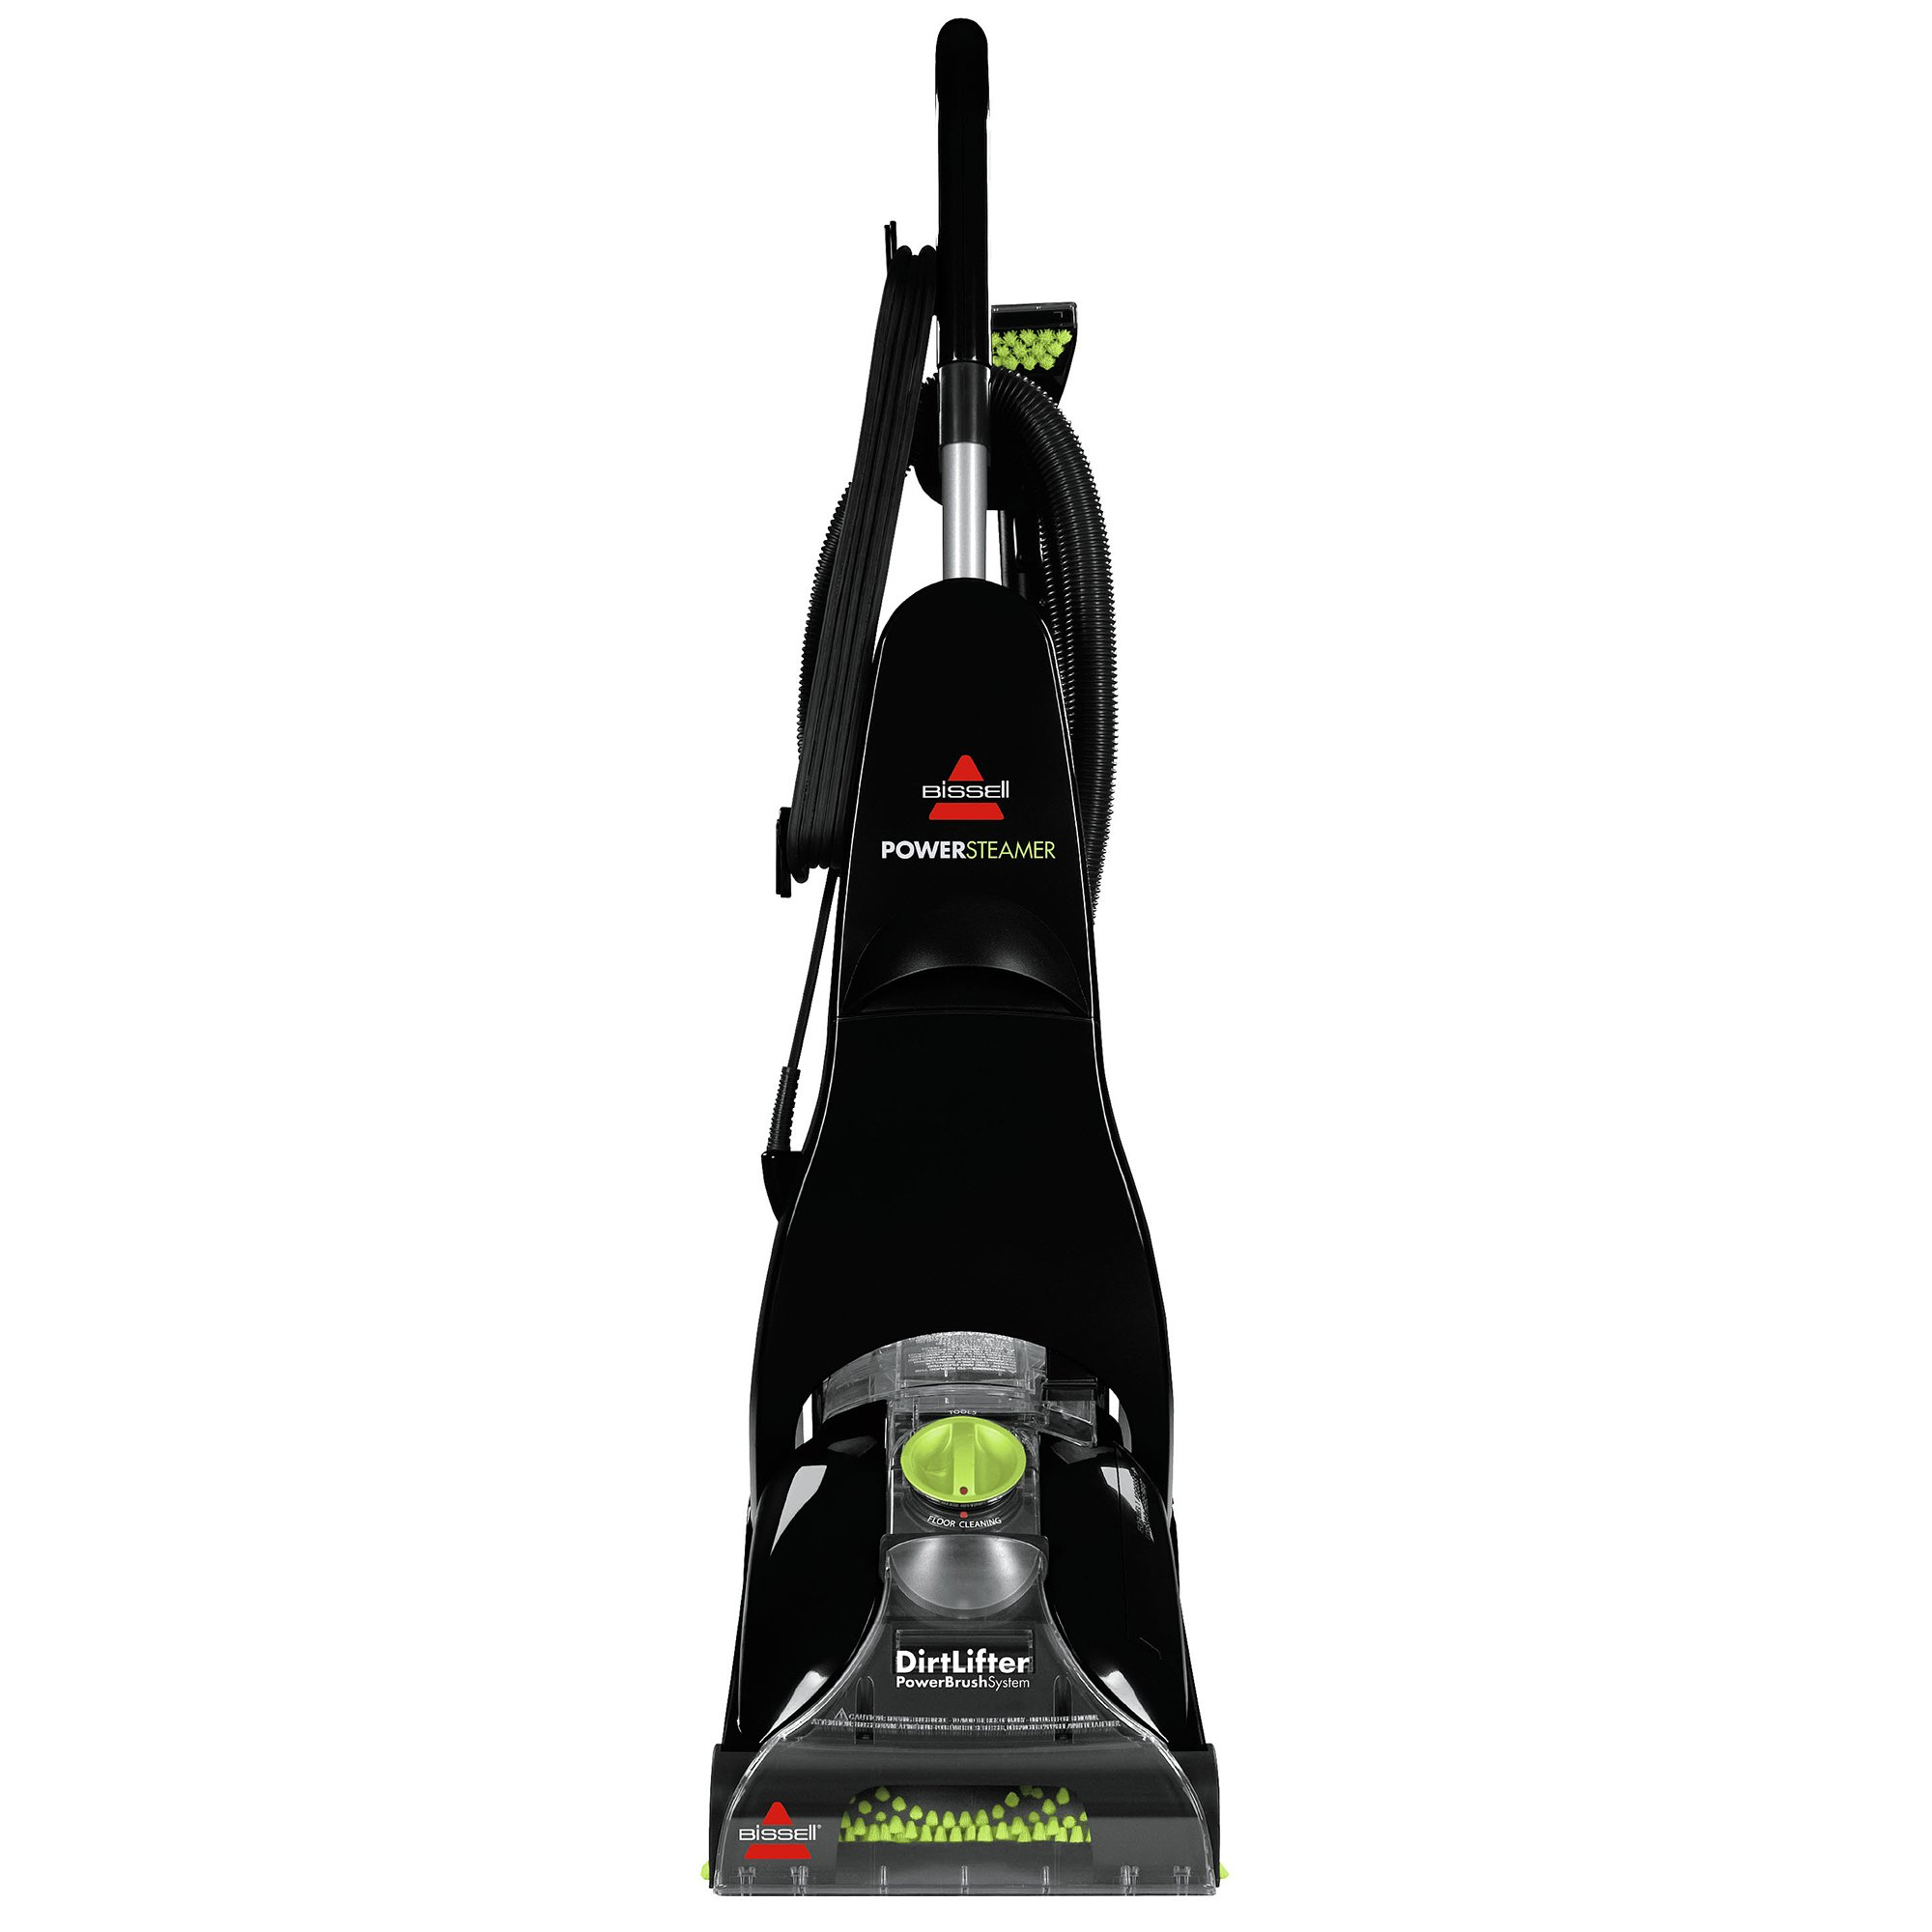 BISSELL Powerbrush Carpet Steamer and Carpet Cleaner, 16237 by Bissell